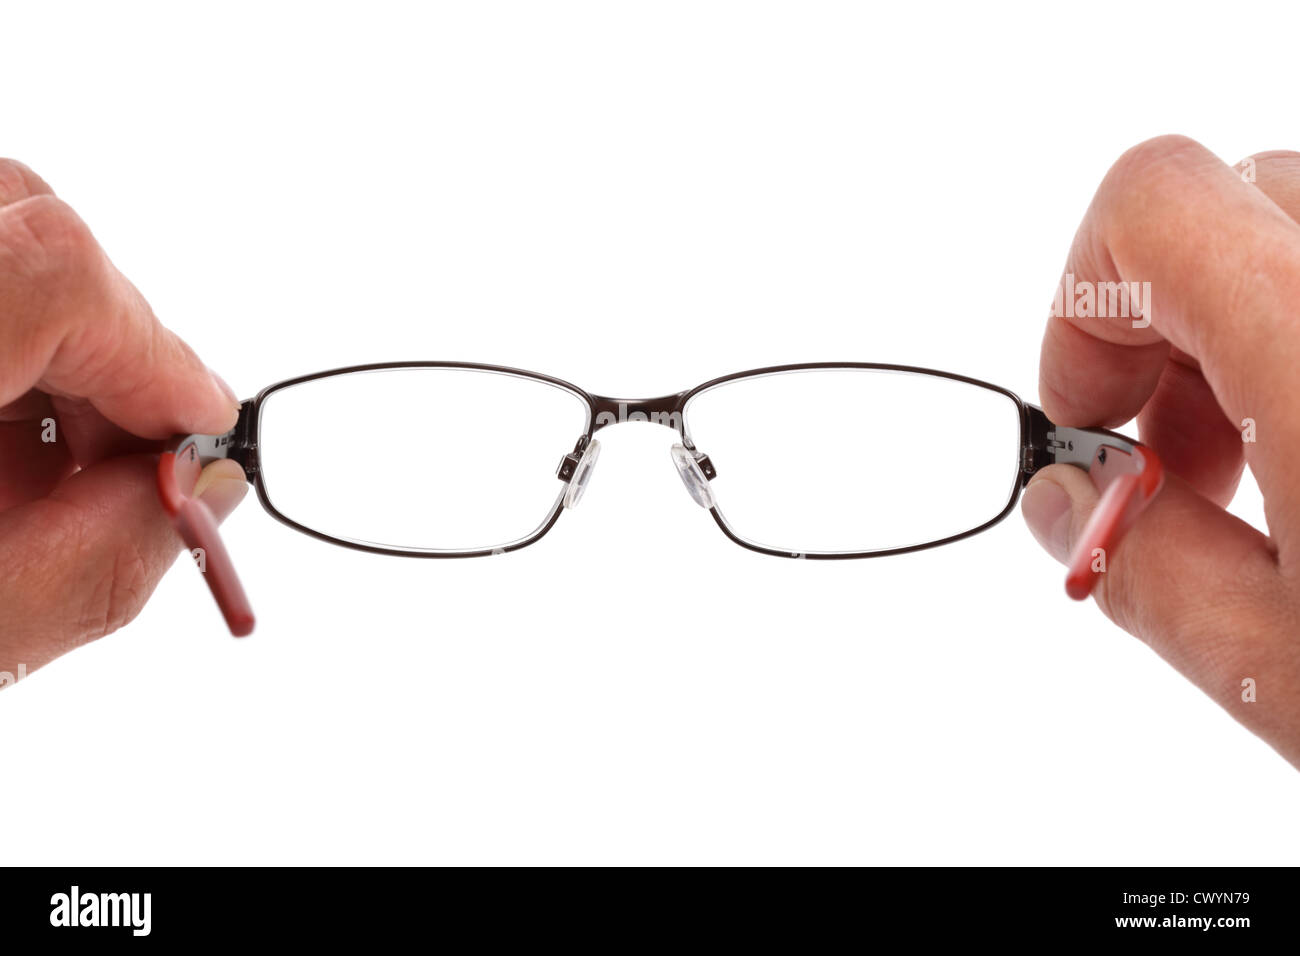 Holding spectacles - Stock Image